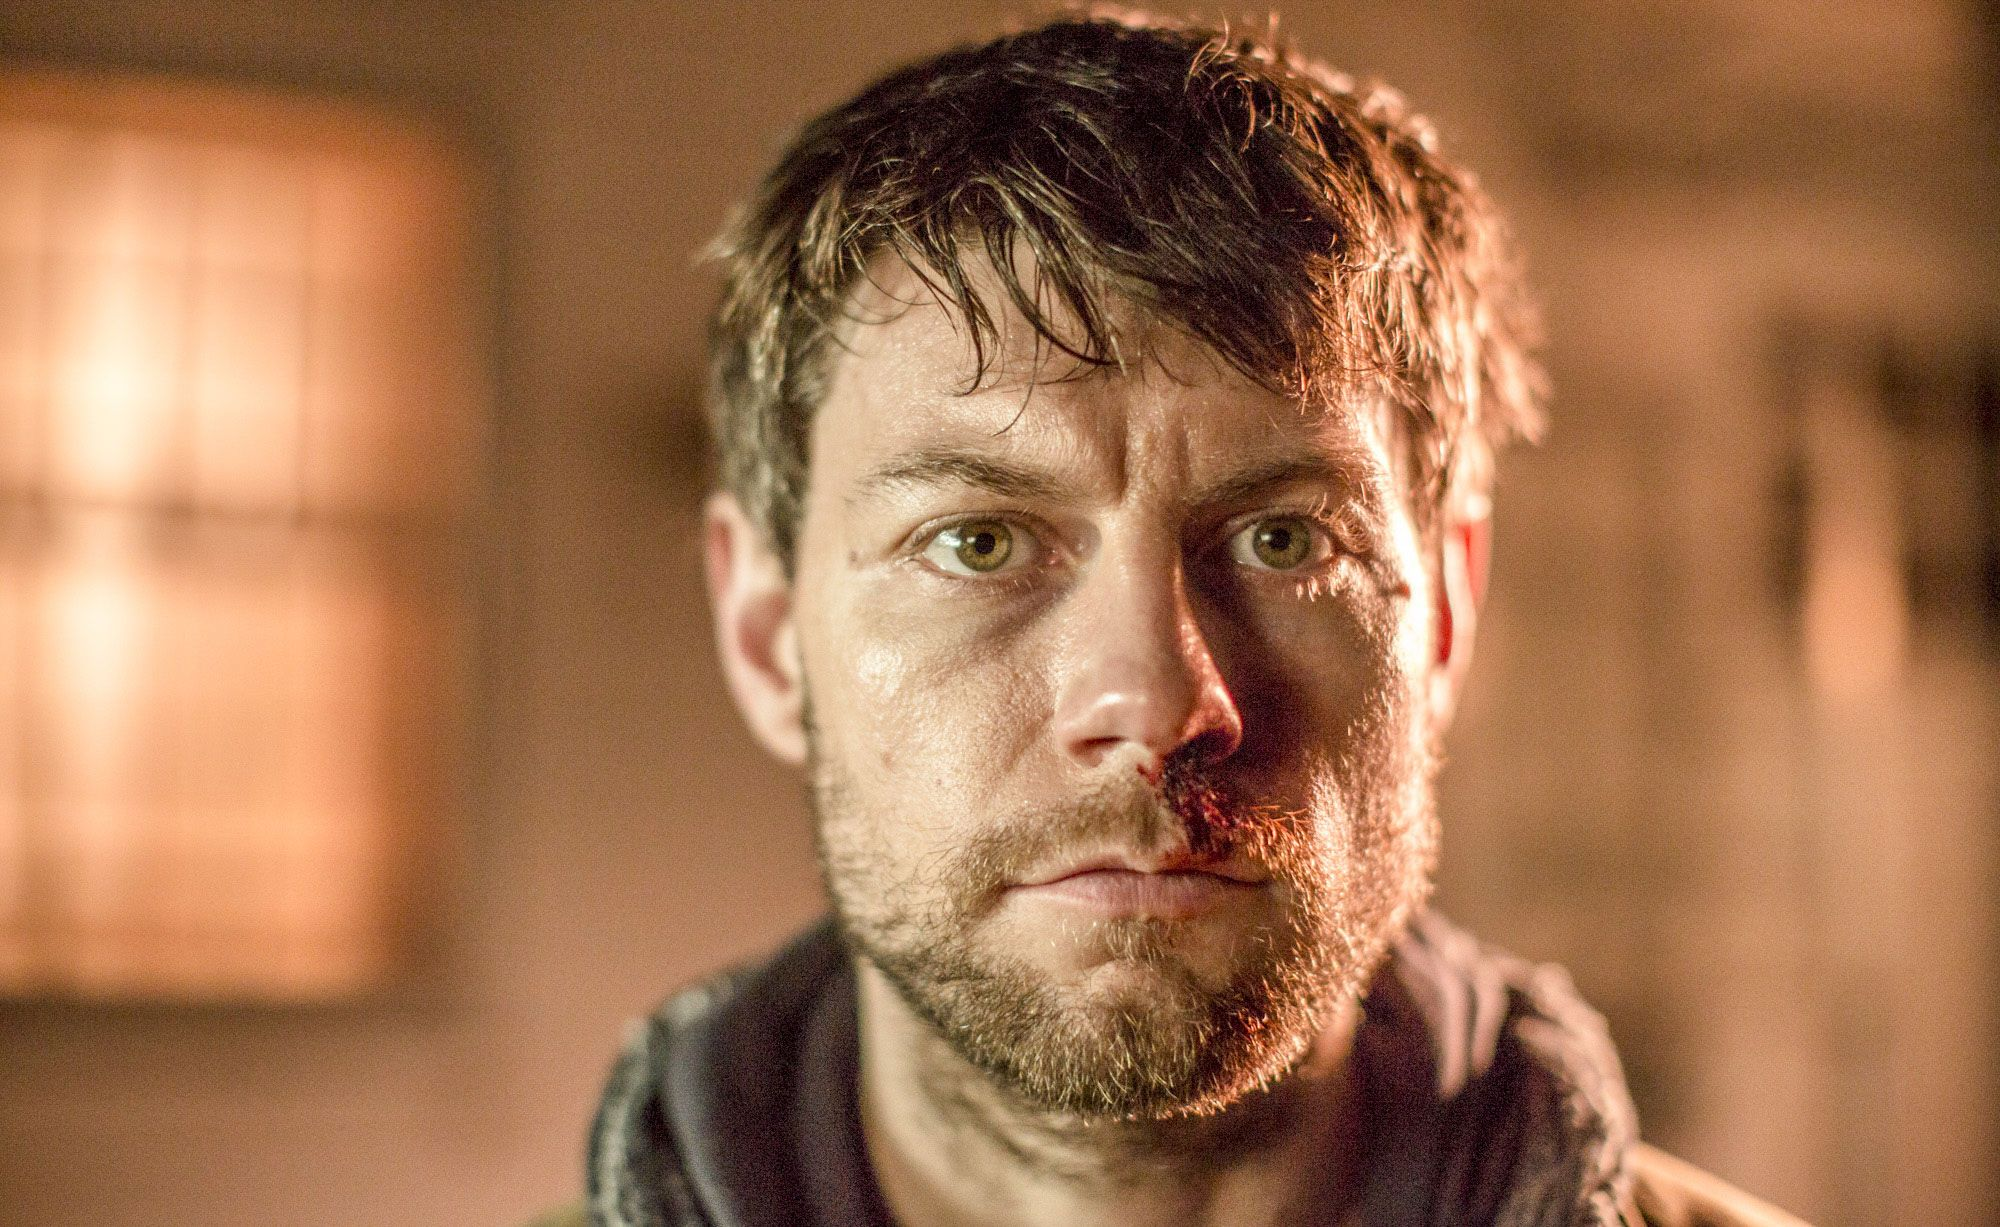 patrick fugit net worthpatrick fugit height, patrick fugit wife, patrick fugit instagram, patrick fugit, patrick fugit first man, patrick fugit net worth, patrick fugit young, patrick fugit gone girl, patrick fugit wiki, patrick fugit outcast, patrick fugit spun, patrick fugit pronunciation, patrick fugit white oleander, patrick fugit wdw, patrick fugit house md, patrick fugit imdb, patrick fugit movies, patrick fugit almost famous, patrick fugit game of thrones, patrick fugit age